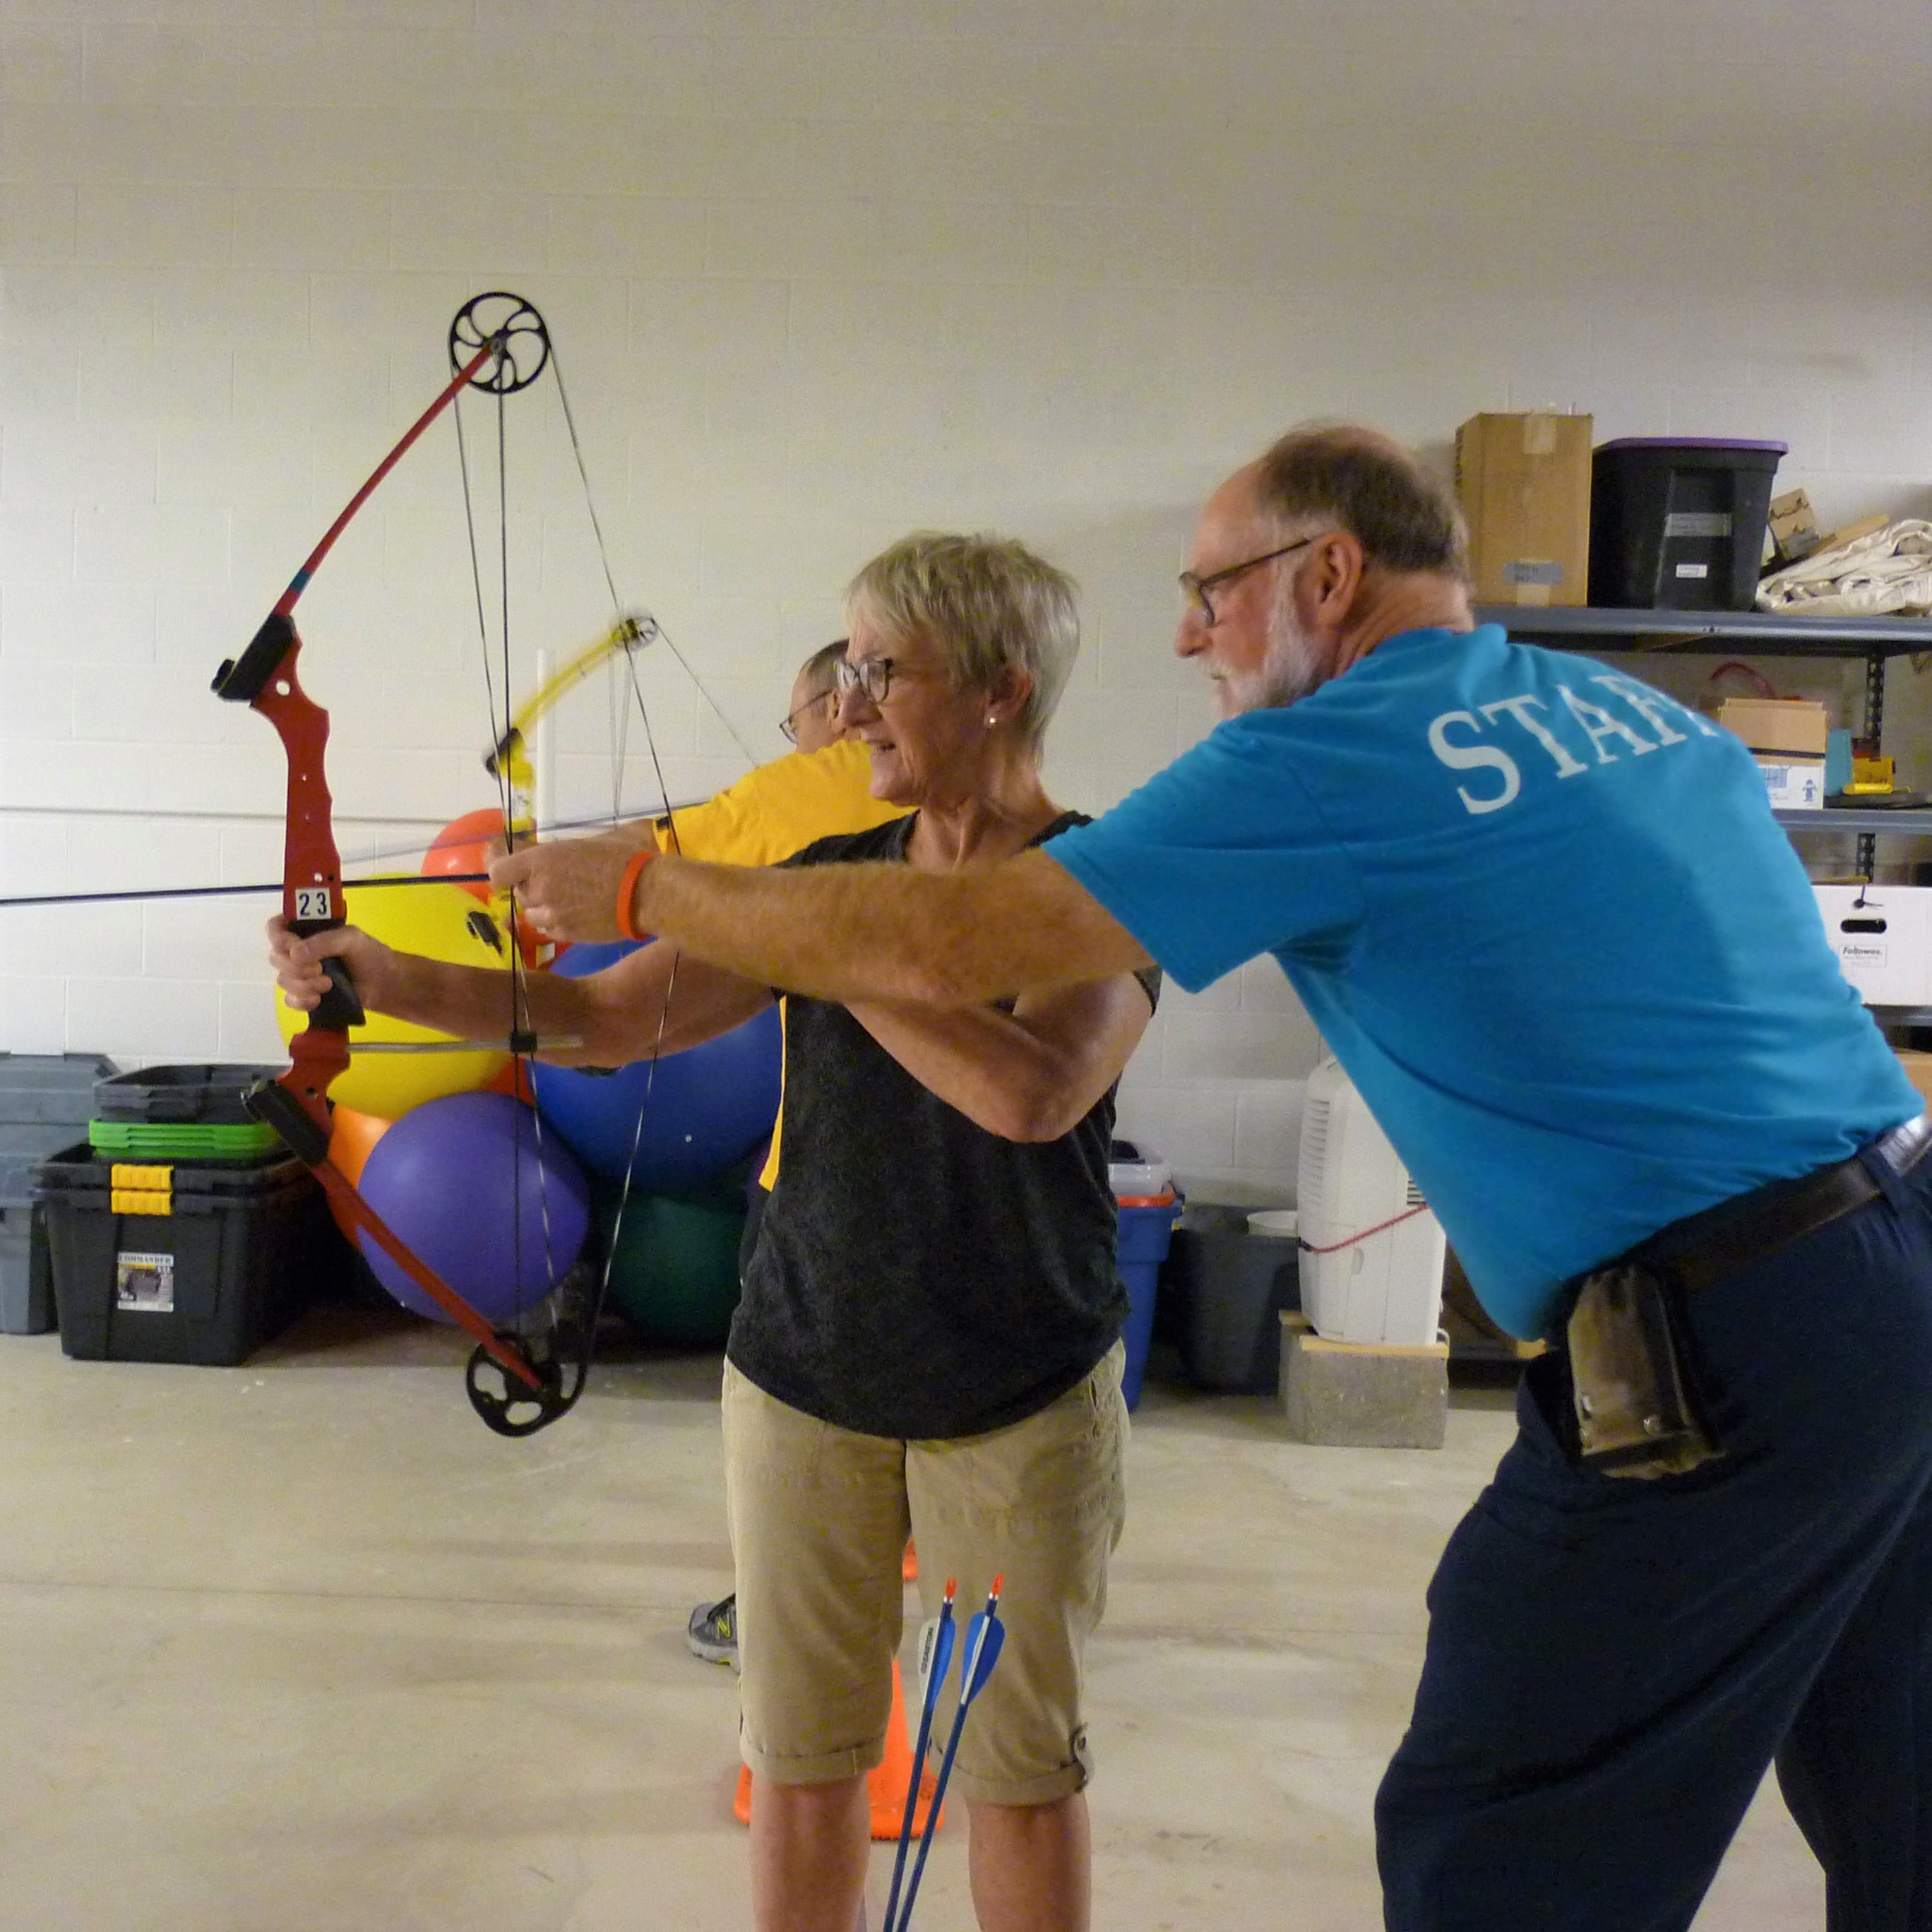 60+ archery participant and instructor